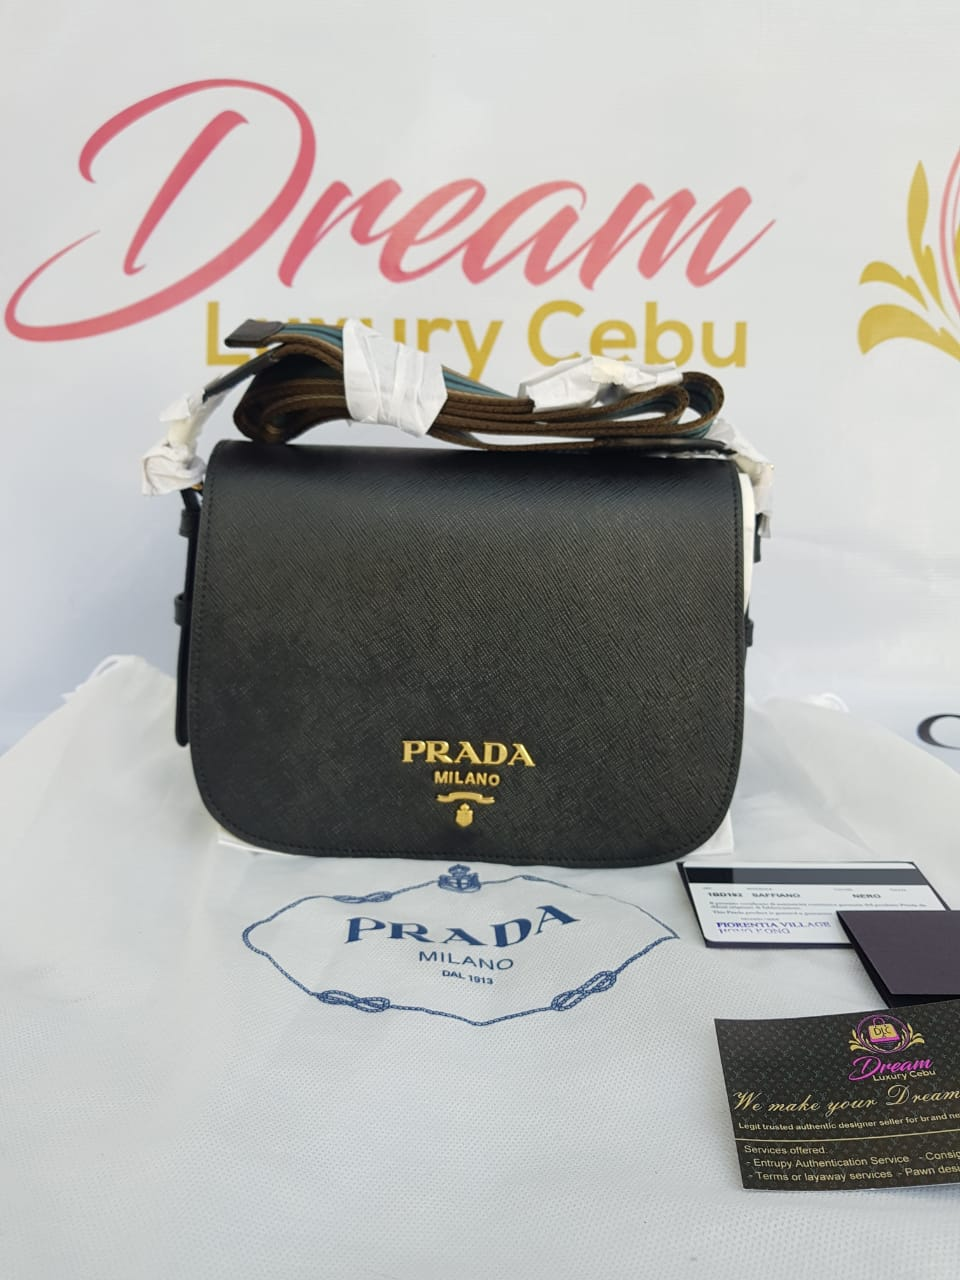 Authentic Prada 1BD192 Saffiano nero, cross body bag philippines